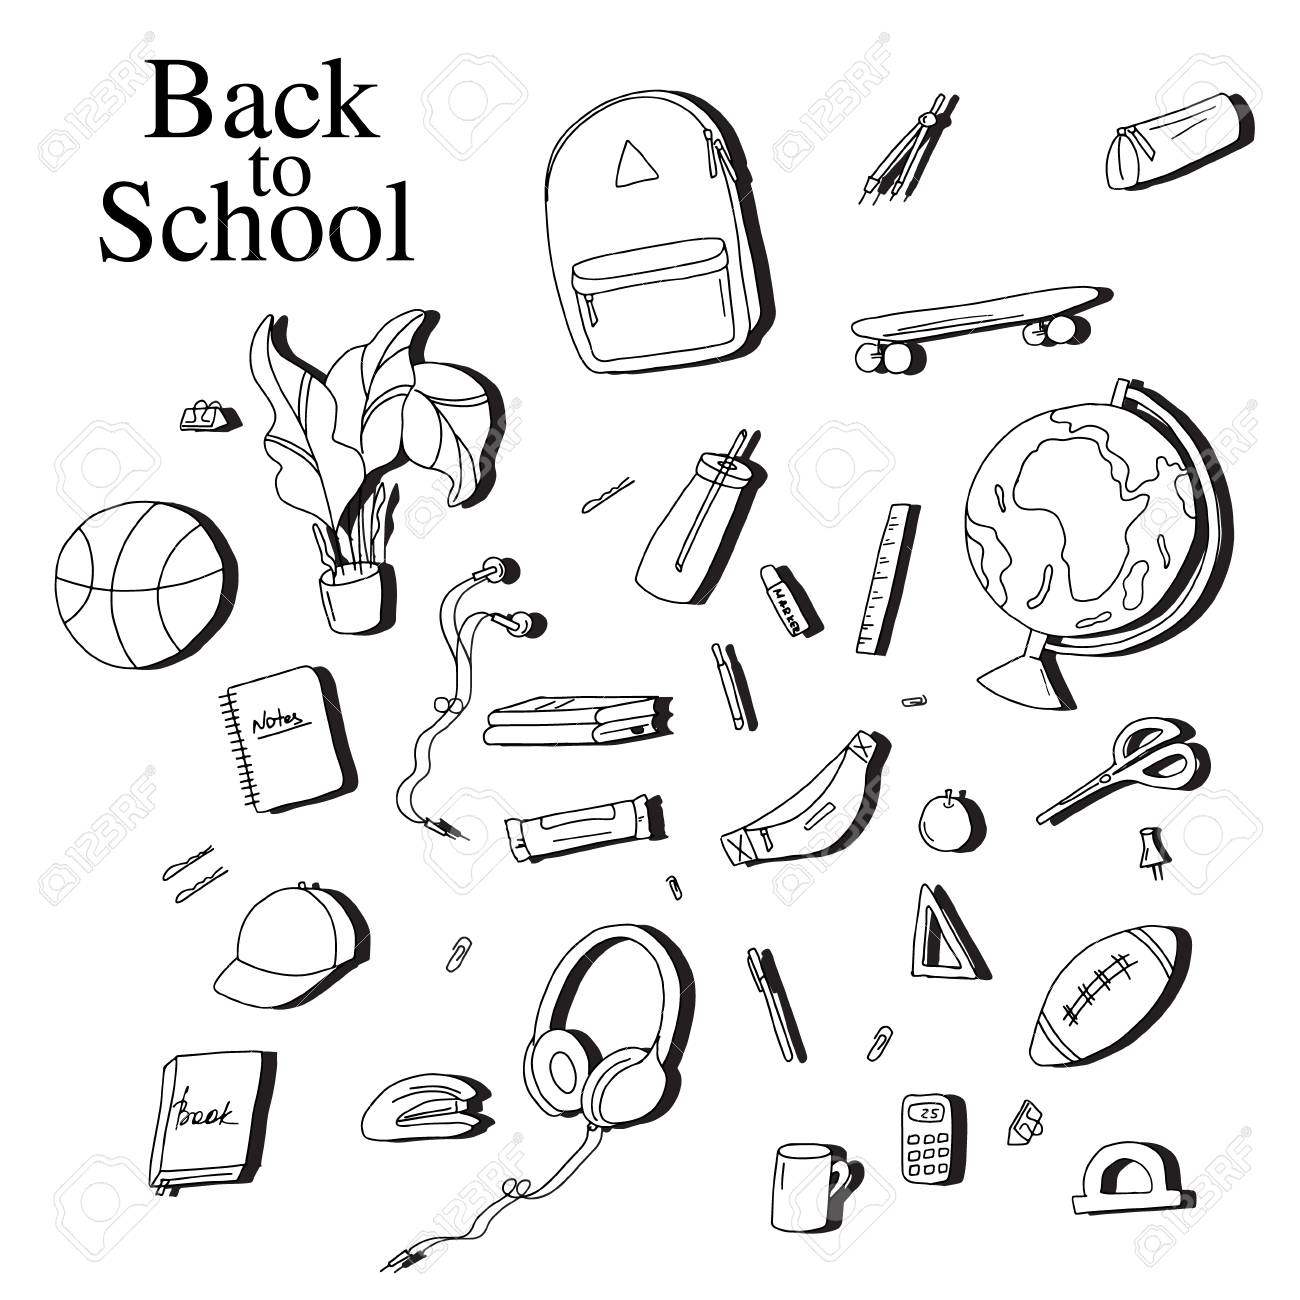 back to school sketch elements black white education equipment High School Layout back to school sketch elements black white education equipment pen notebook calculator